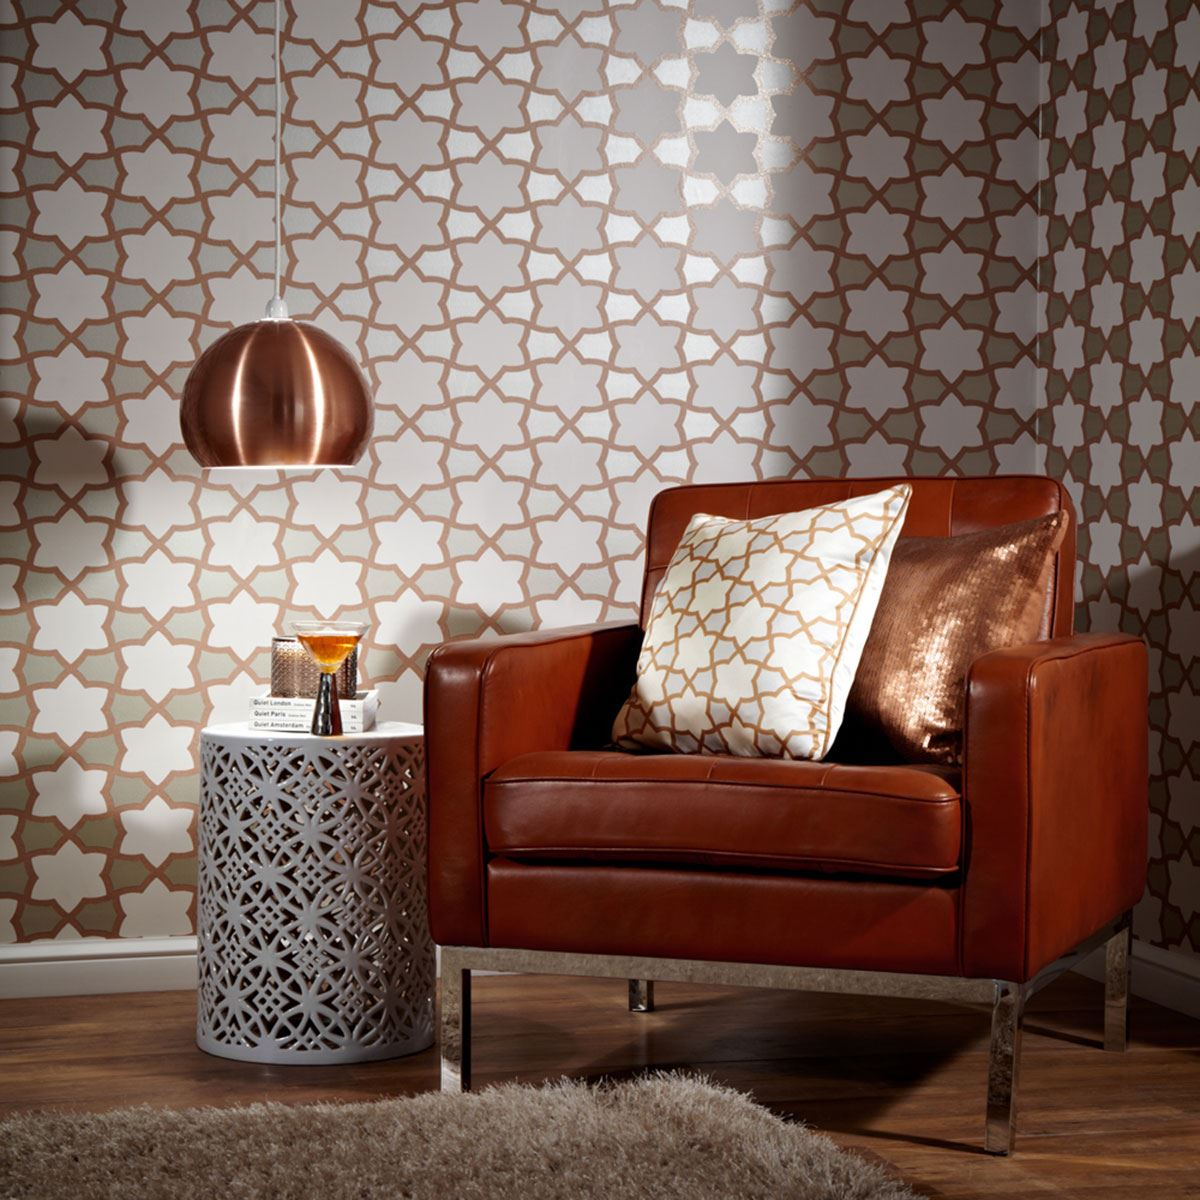 ARTHOUSE TROPICS RIO GEOMETRIC WALLPAPER COPPER Amp SILVER